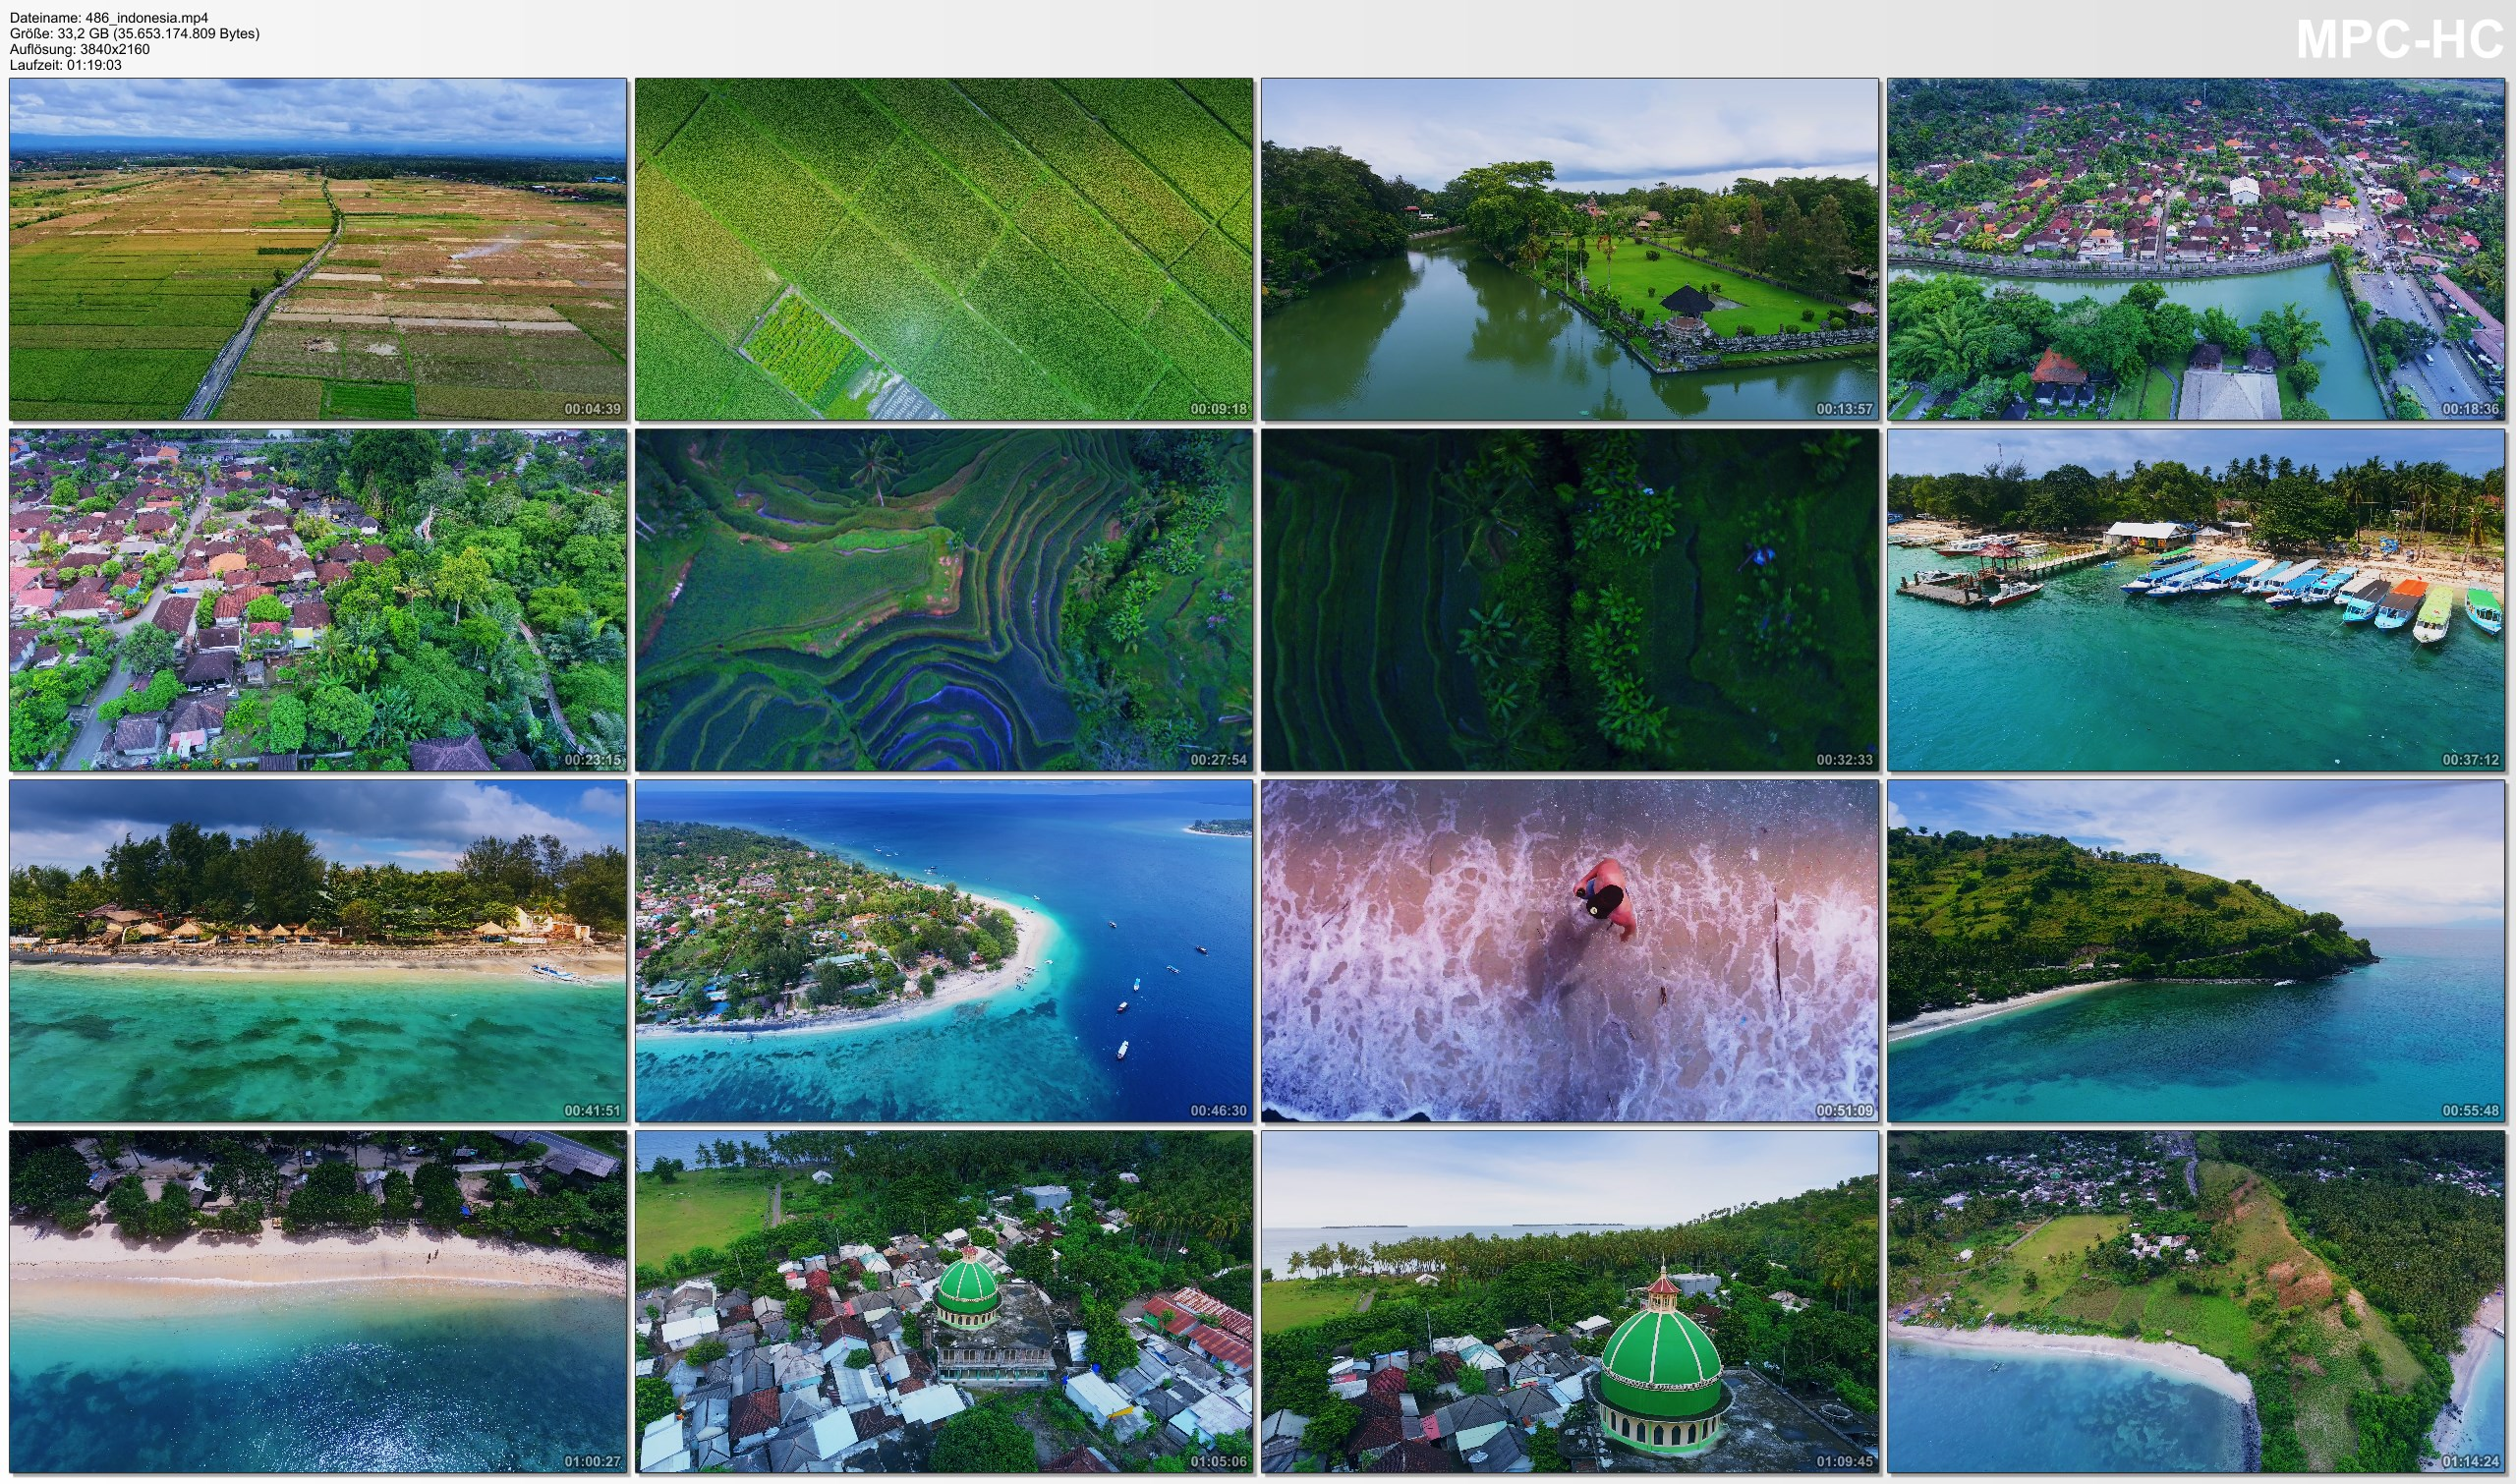 Drone Pictures from Video 【4K】Drone RAW Footage | This is INDONESIA 2020 | Bali | Lombok | Gili Islands | UltraHD Stock Video